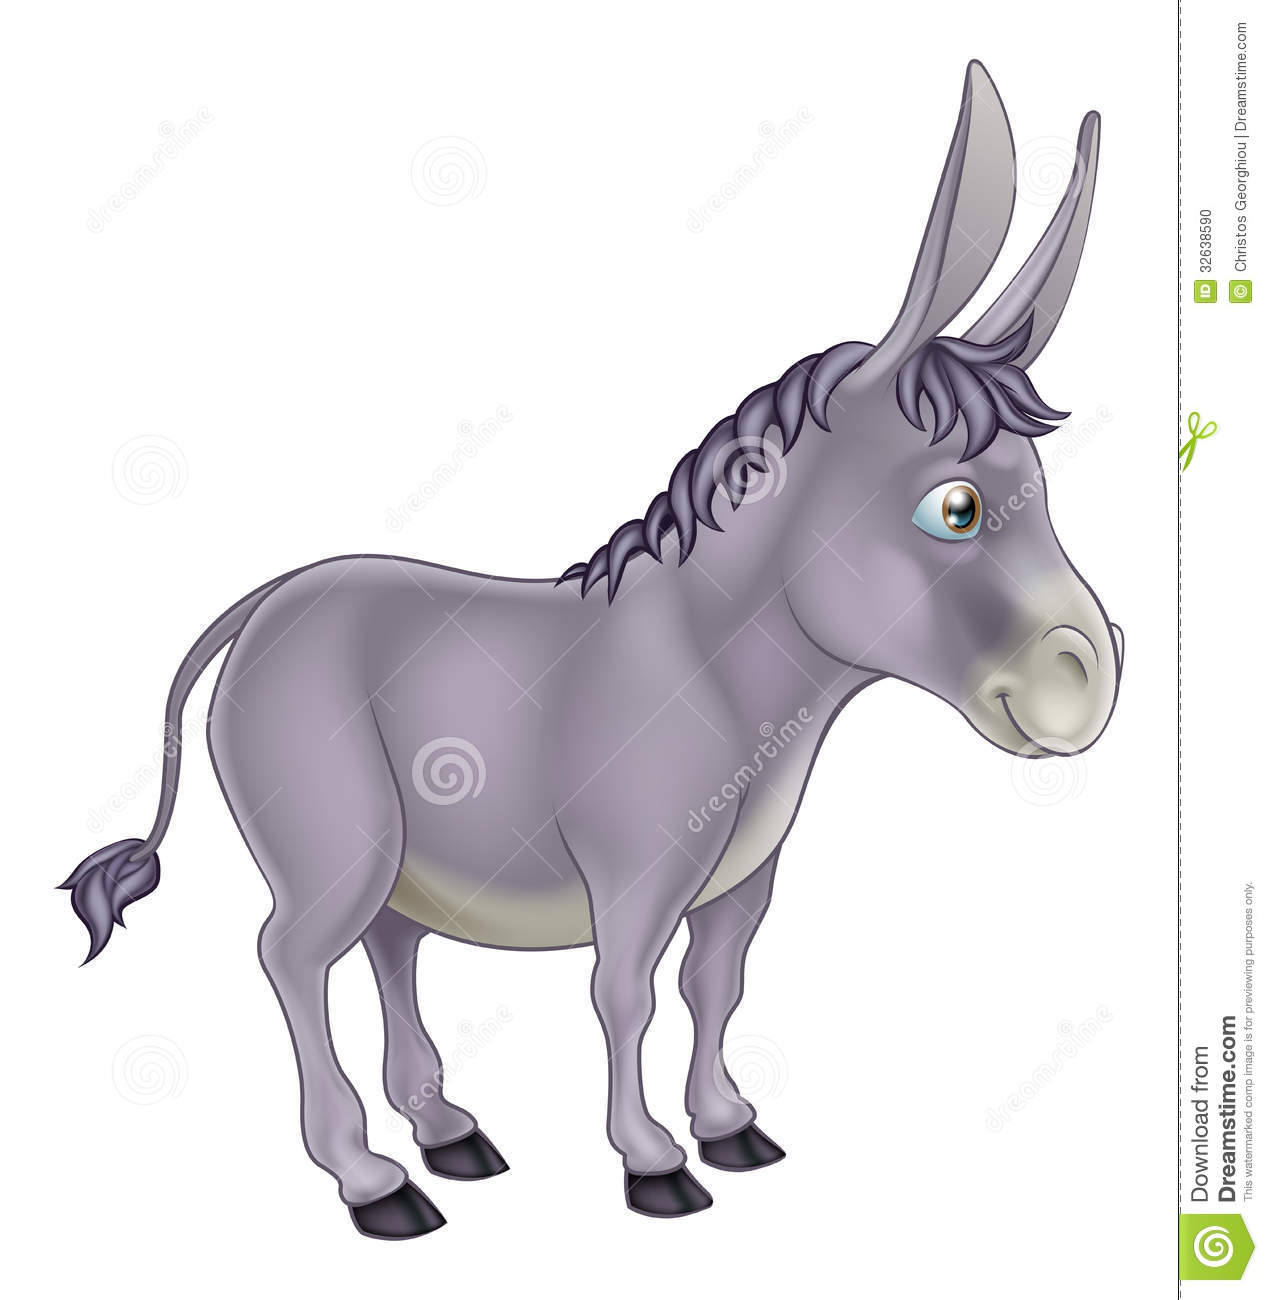 An illustration of a cute grey cartoon donkey character.